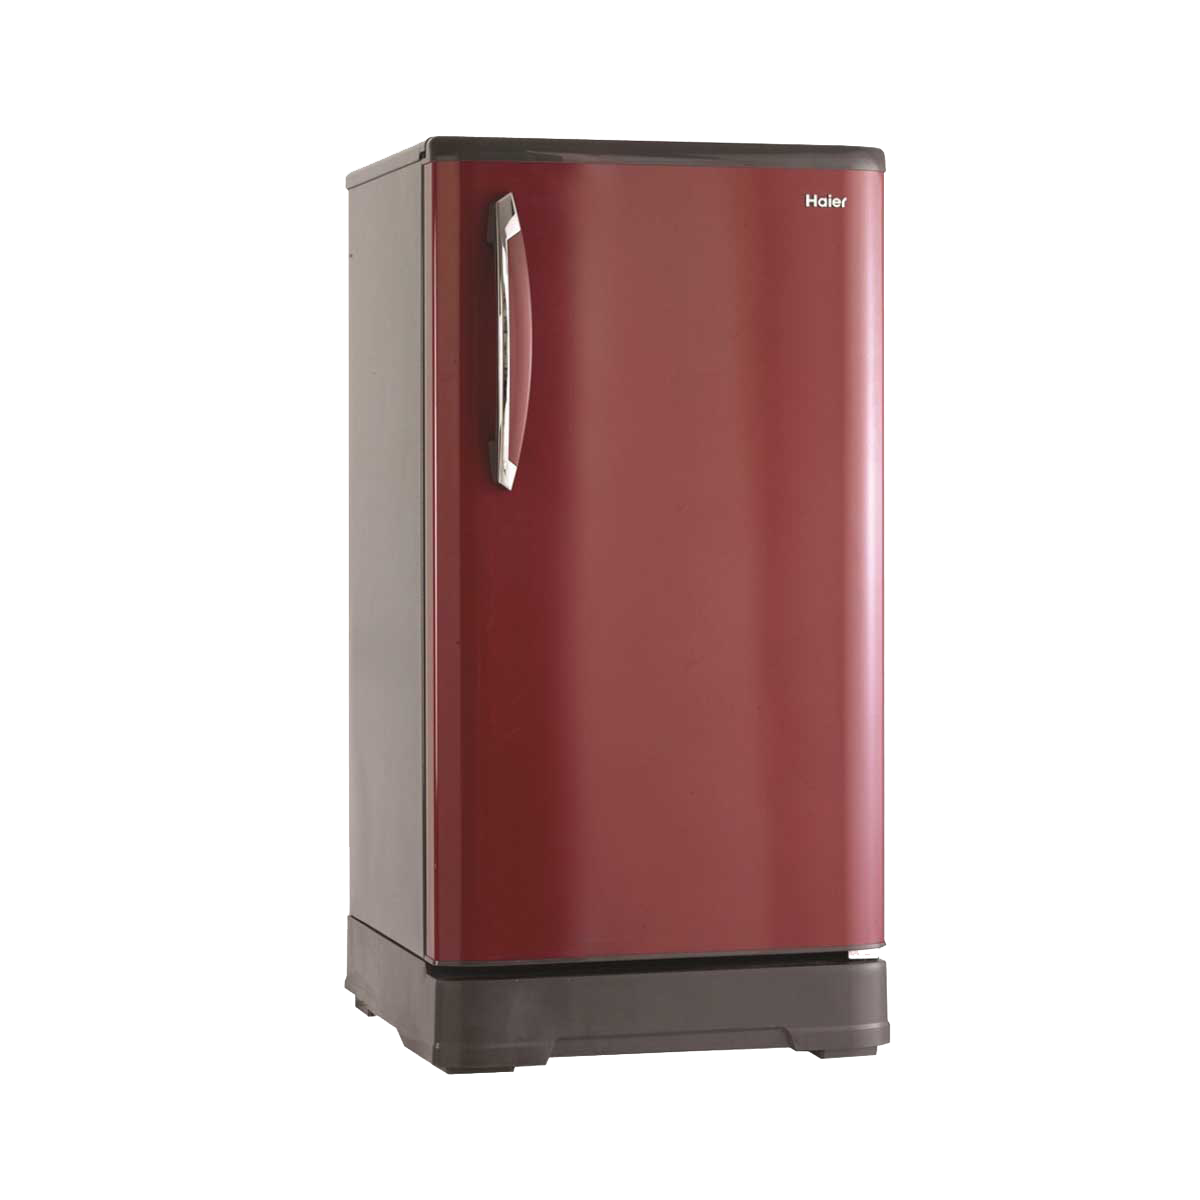 Fridge HD PNG